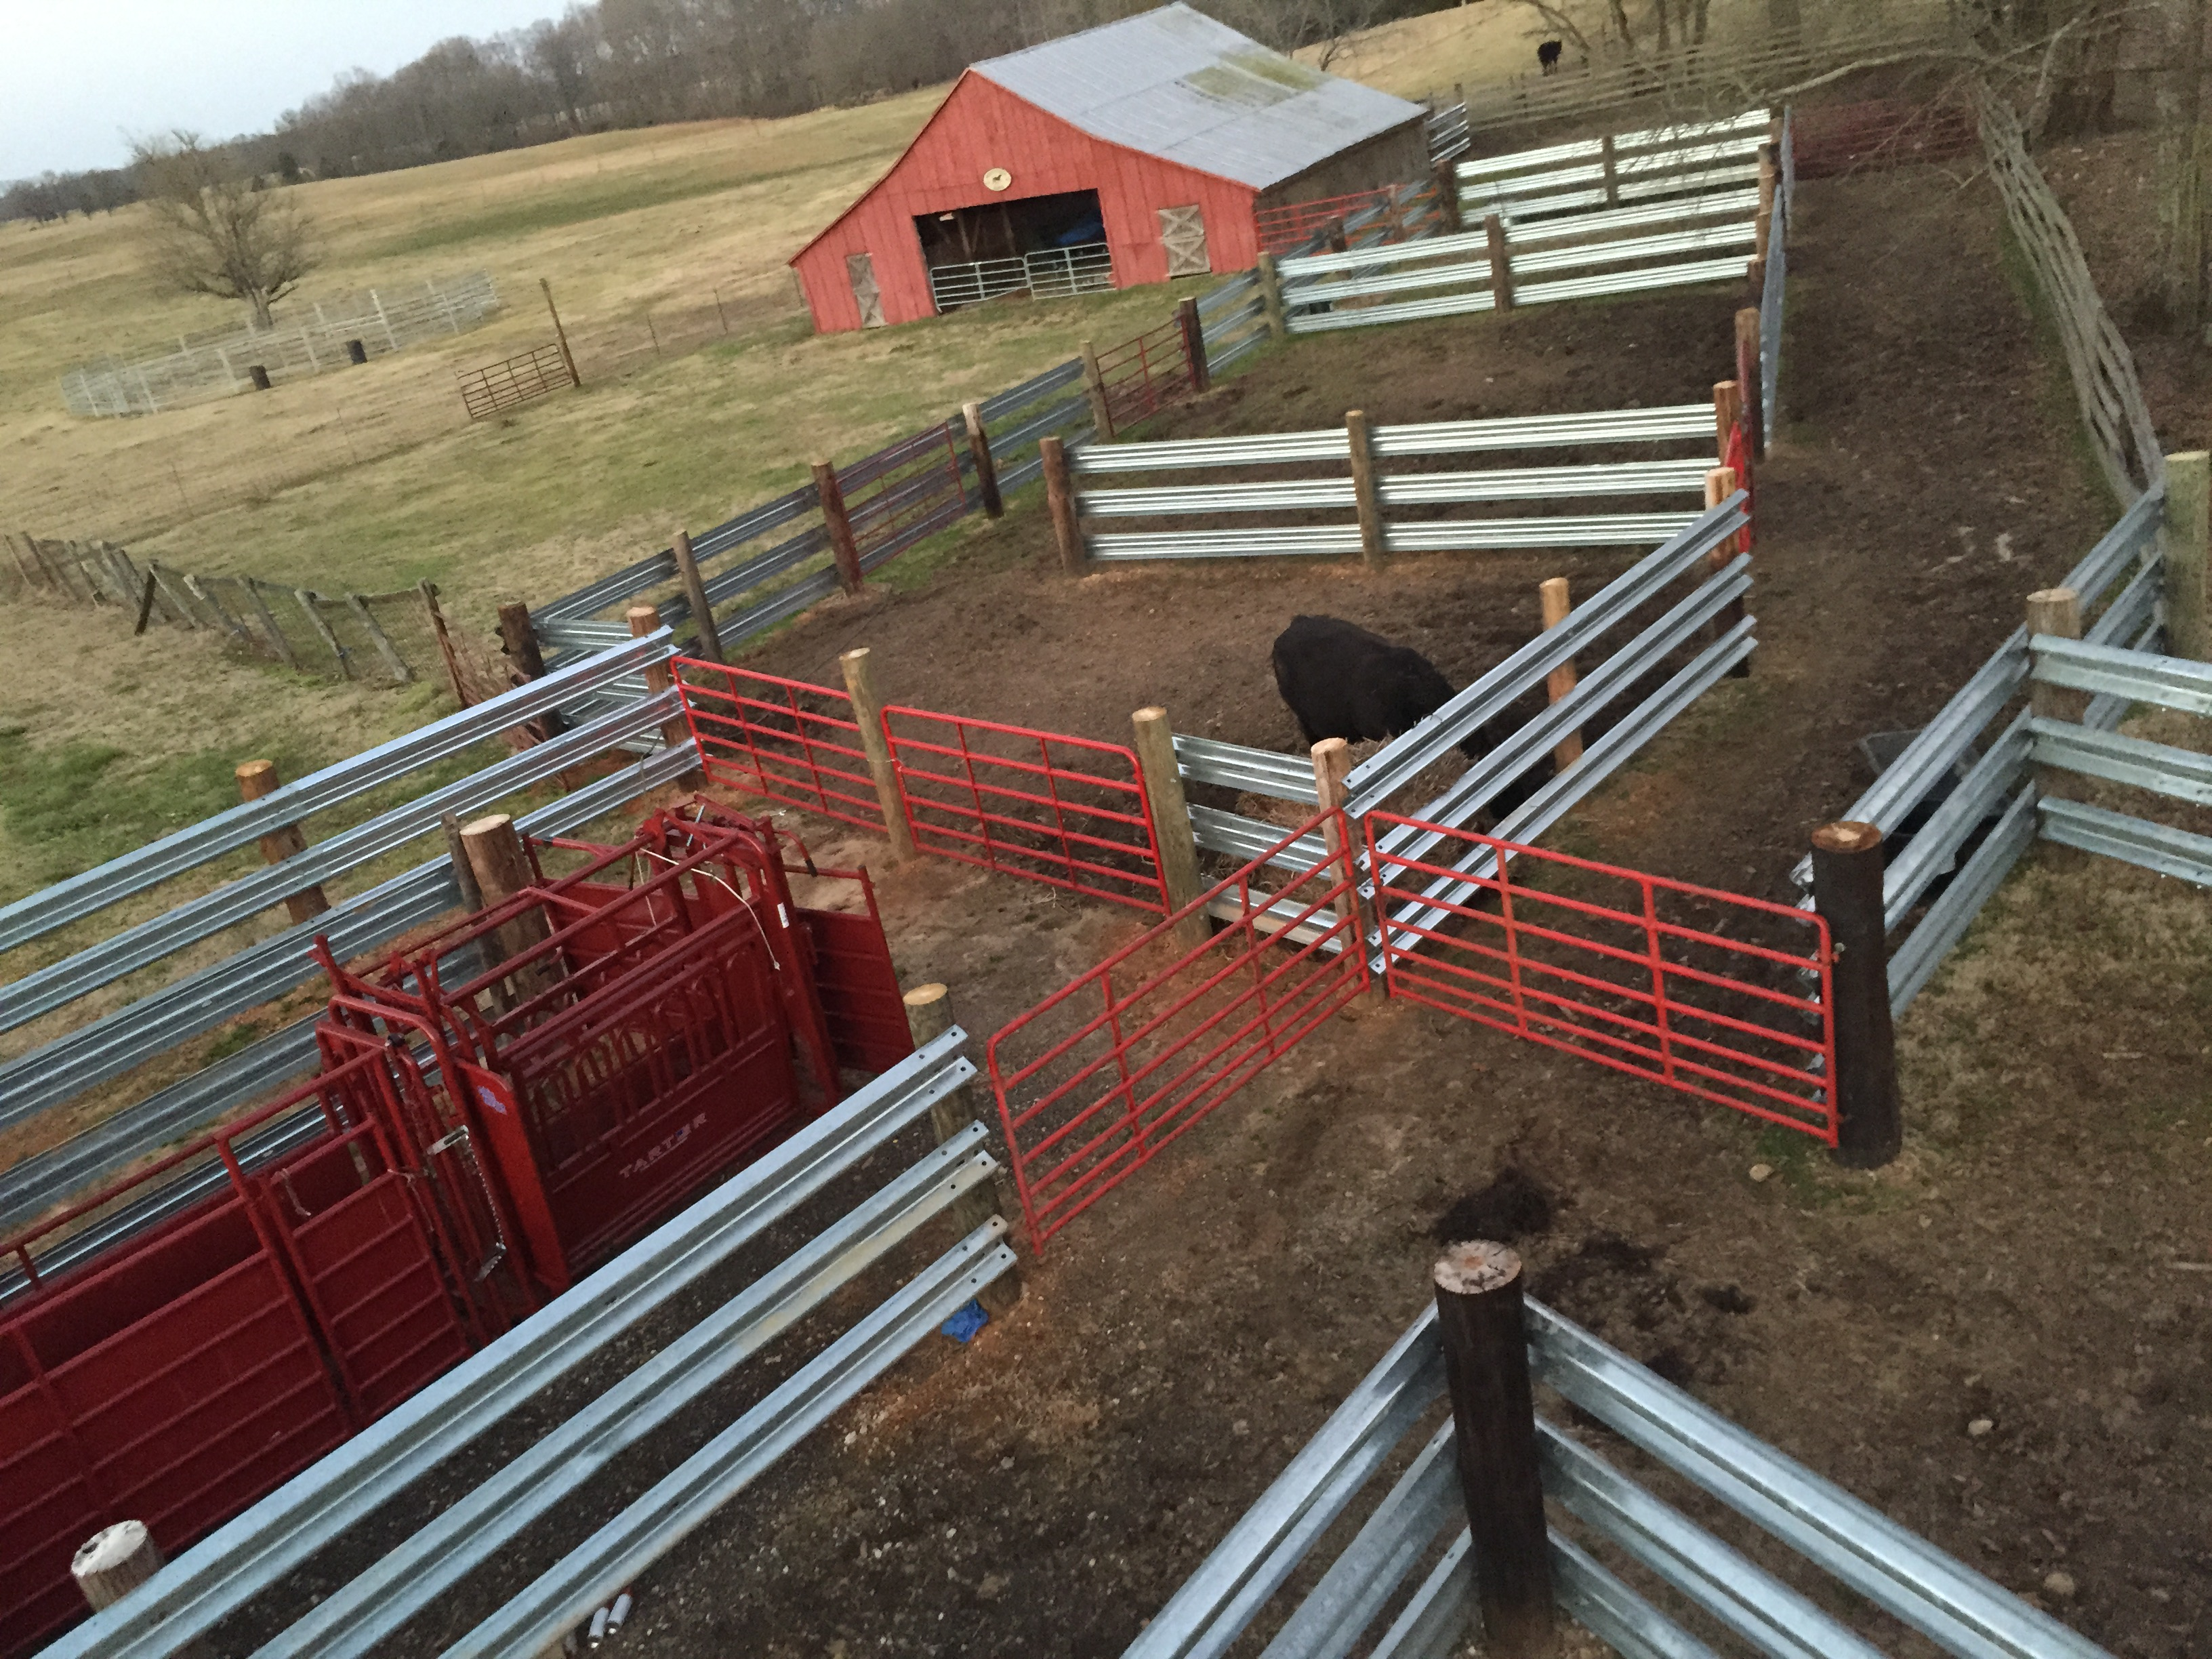 26 foot W-Beam Guardrail for corrals, feed bunks, cattle fencing and arenas